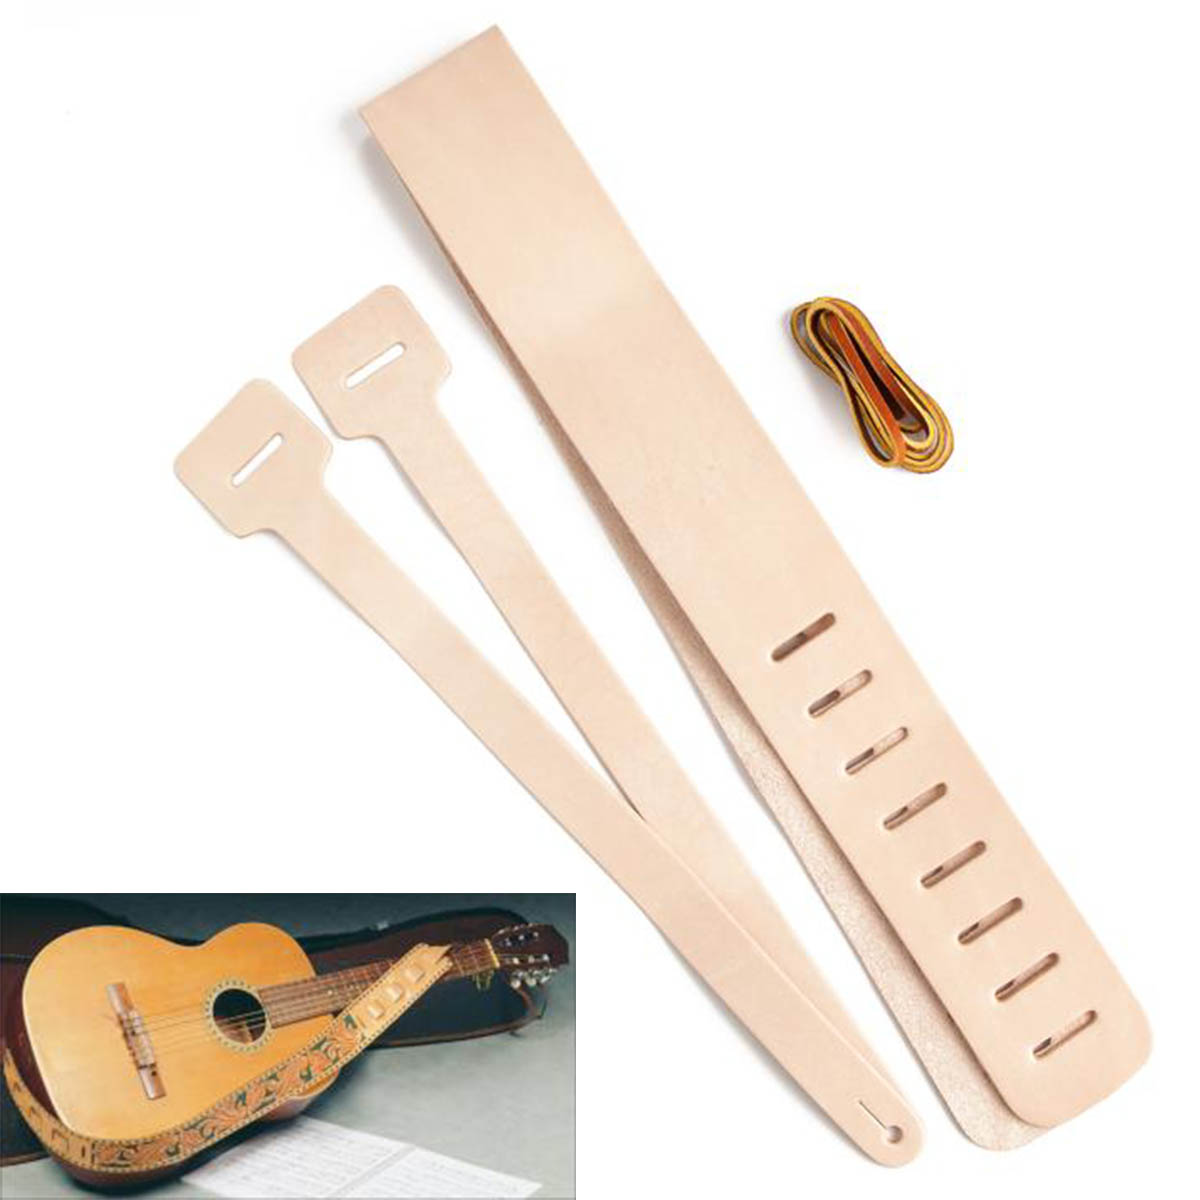 Kit pour sangle de guitare en cuir - 44421